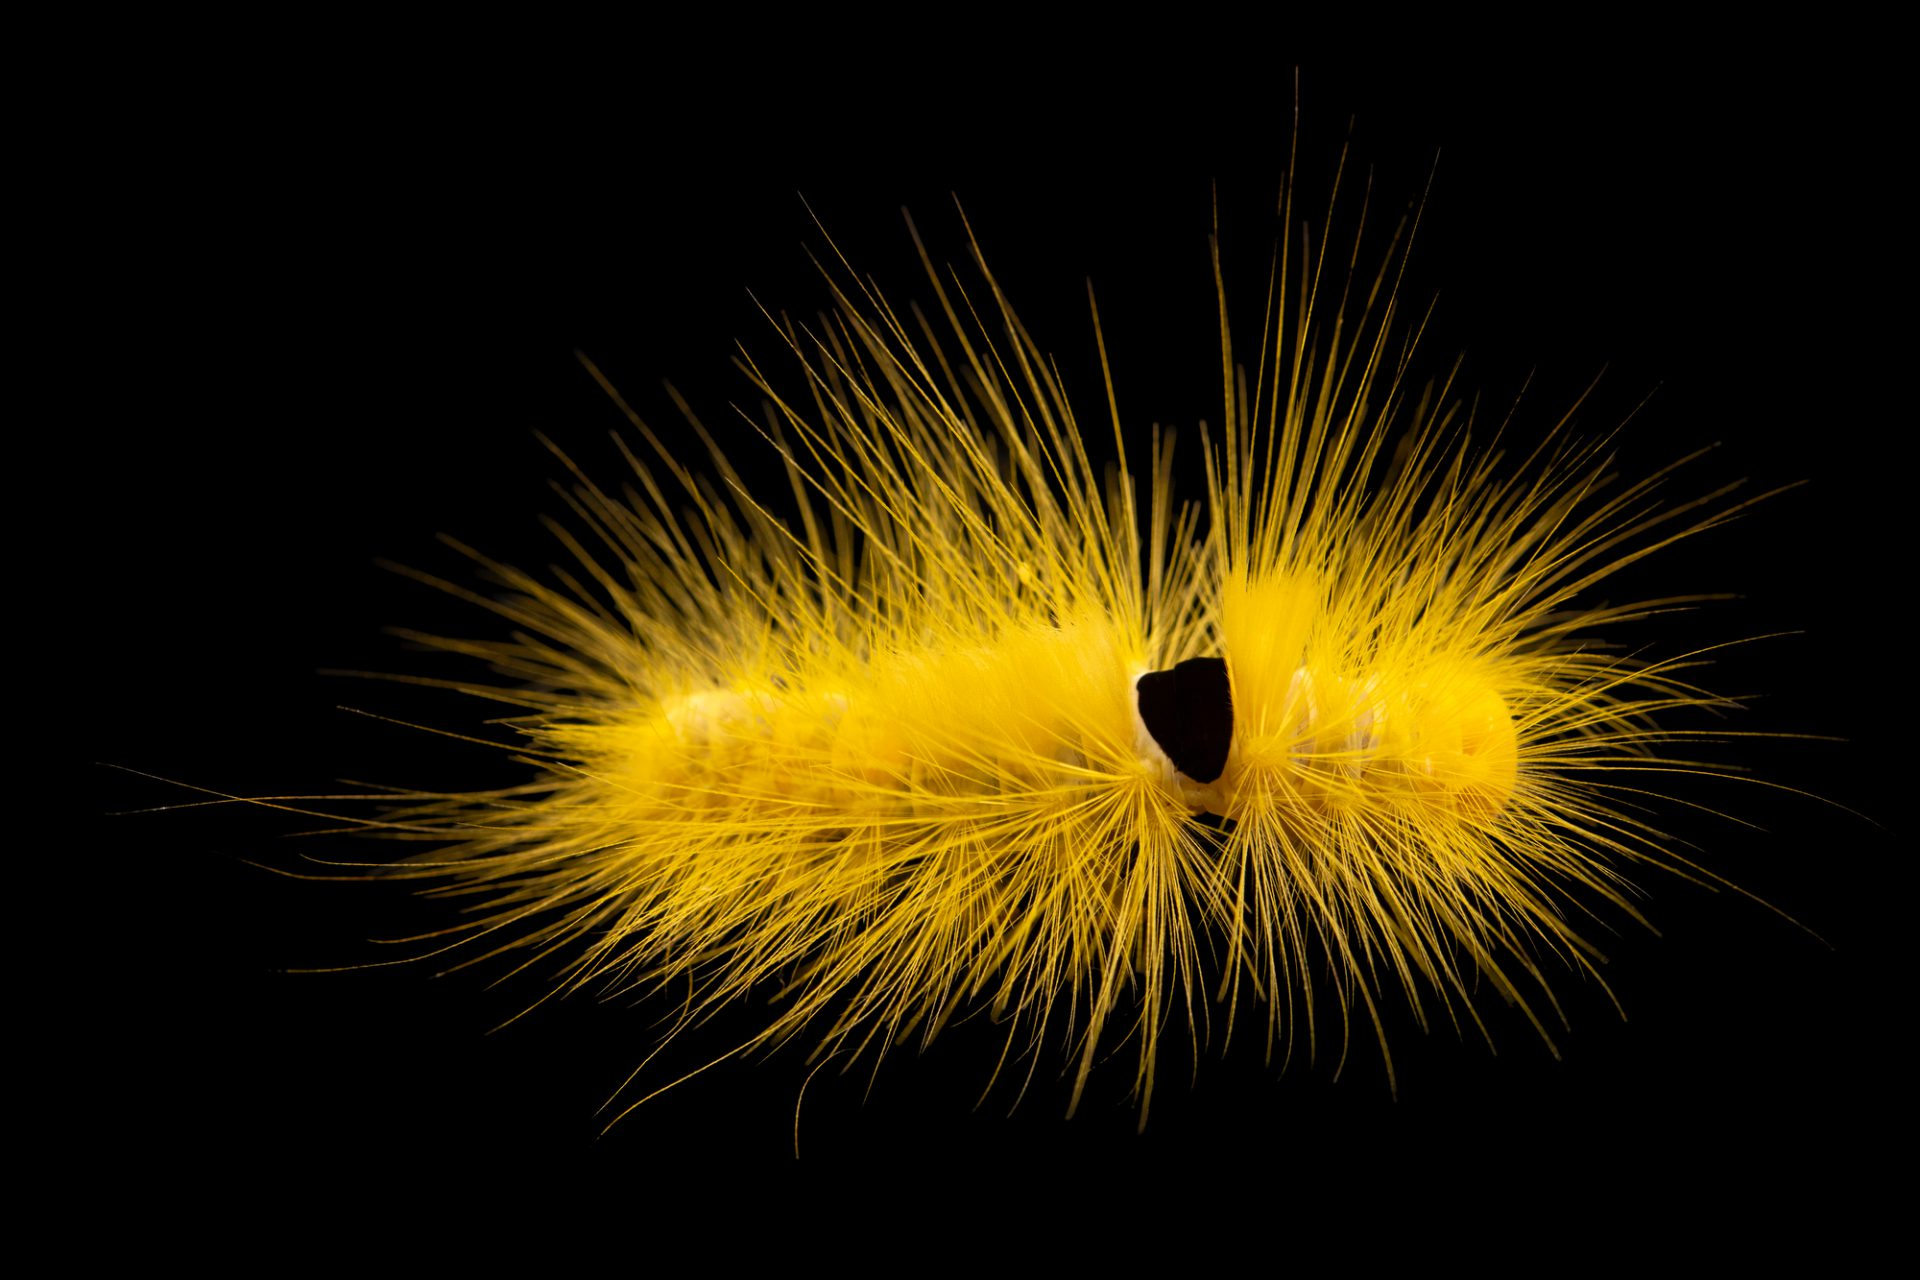 Photo: Caterpillar of a yellow tussock moth (Calliteara horsfieldii) collected on grounds at the Singapore Zoo.